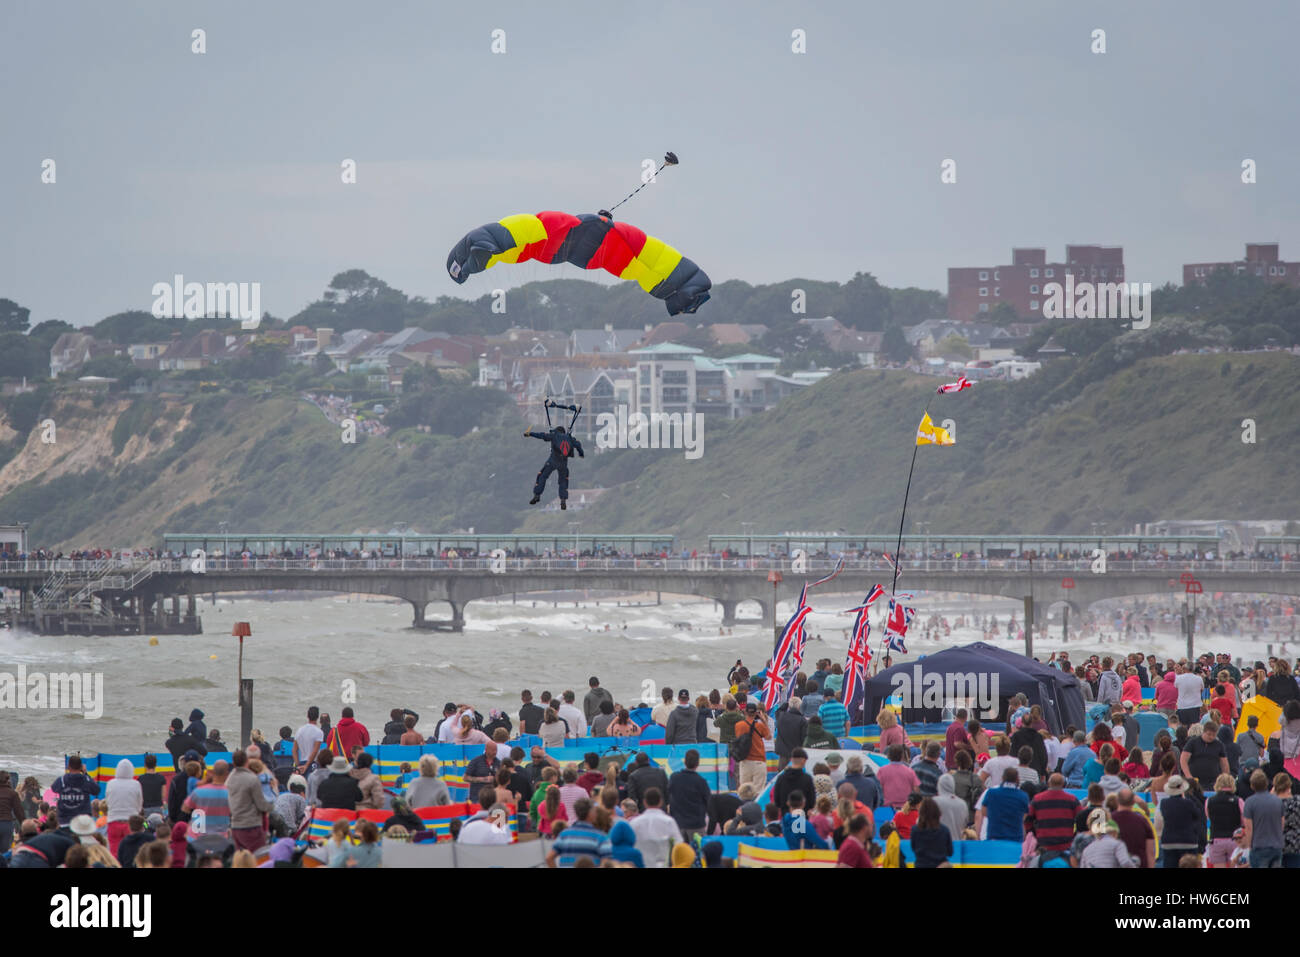 Parachutist landing at the 2016 Bournemouth Air Festival. - Stock Image